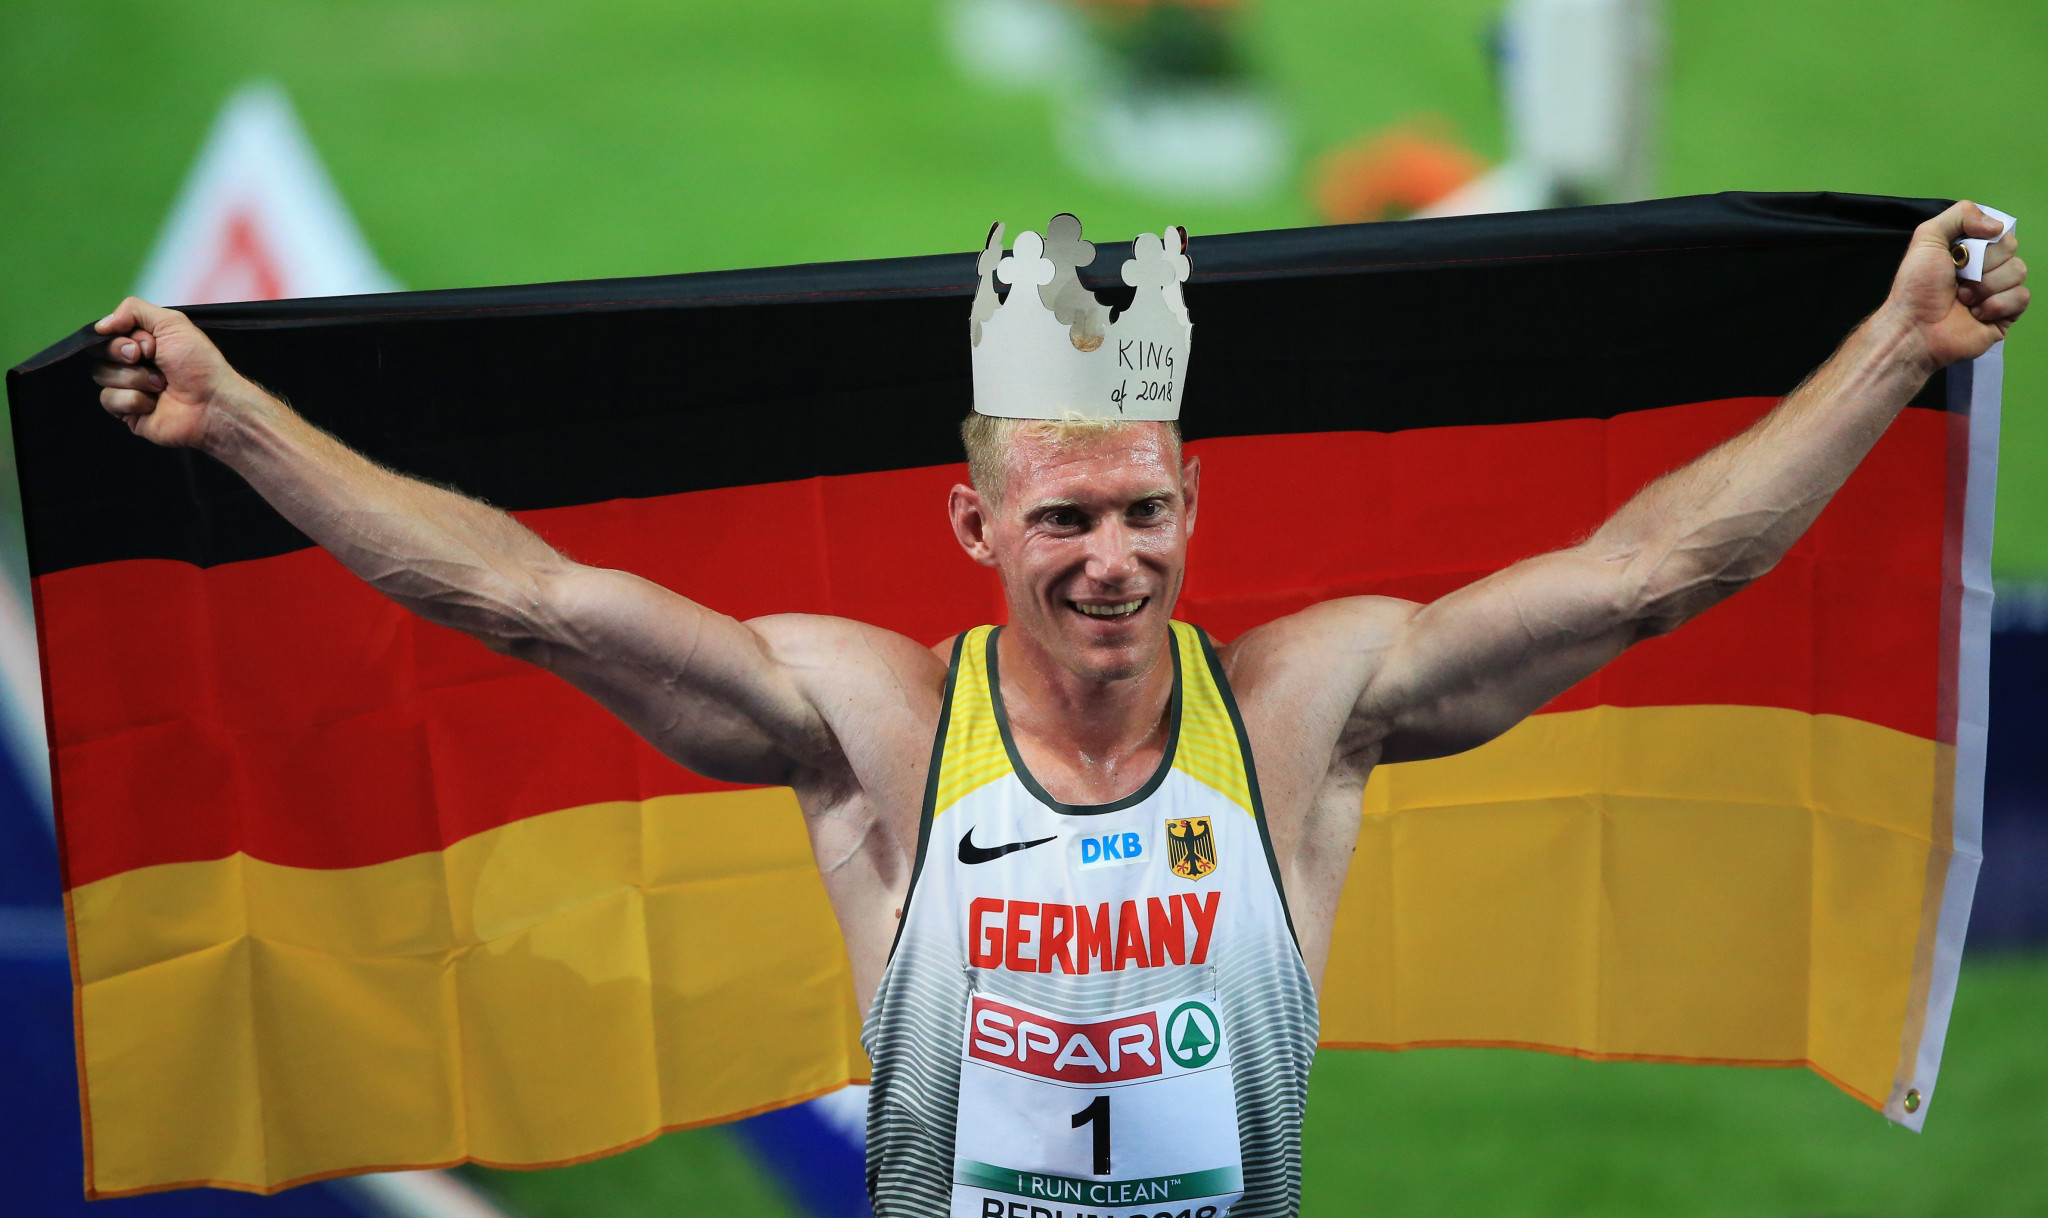 No podium farewell for Harting but Abele gives German hosts first European gold in decathlon